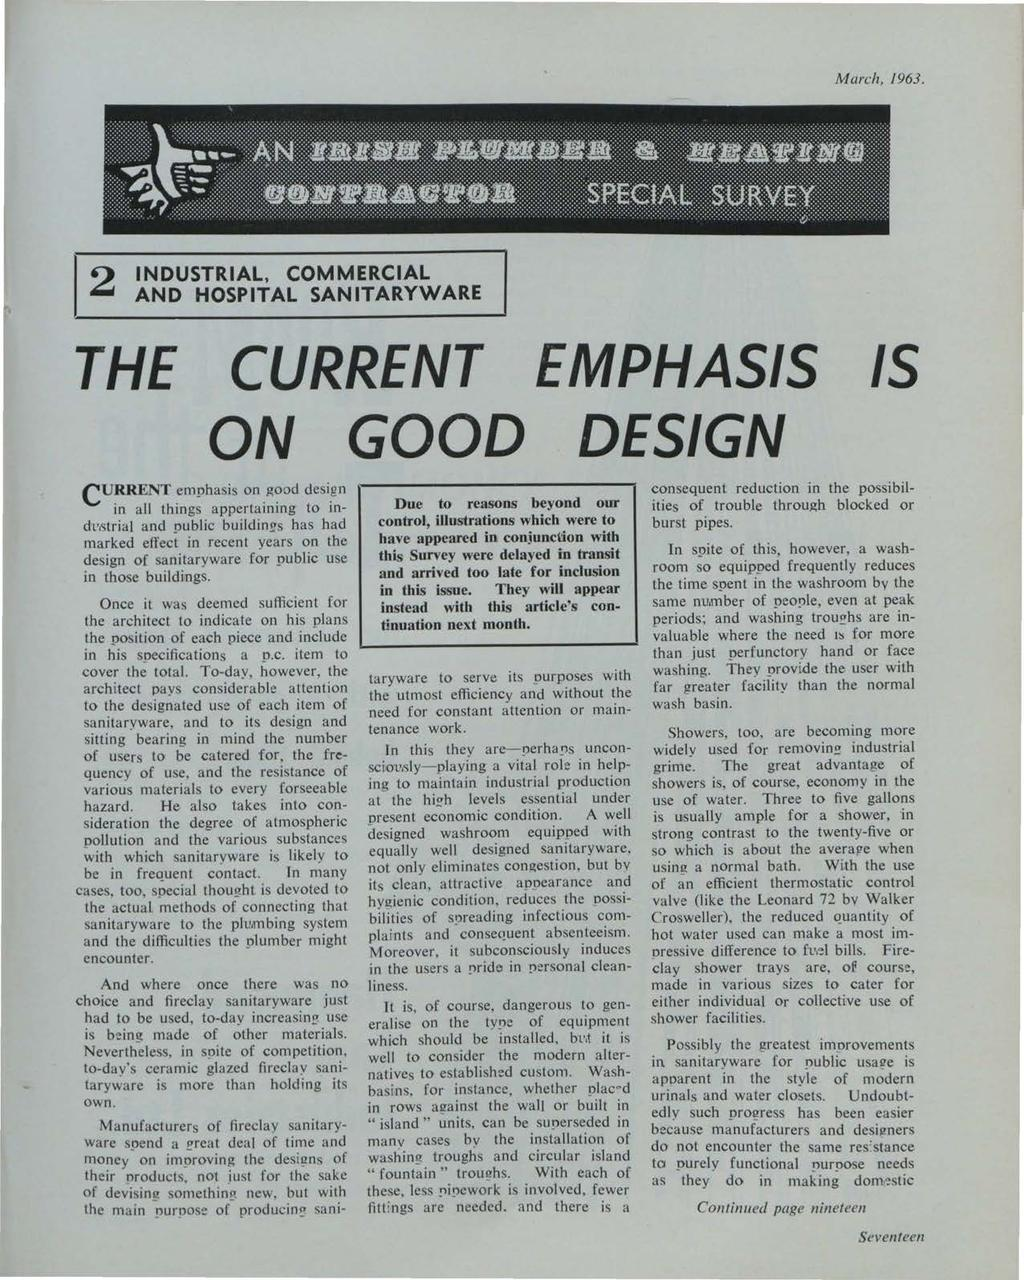 et al.: The Irish Plumber and Heating Contractor, March 1963 (complete is March, 1963.